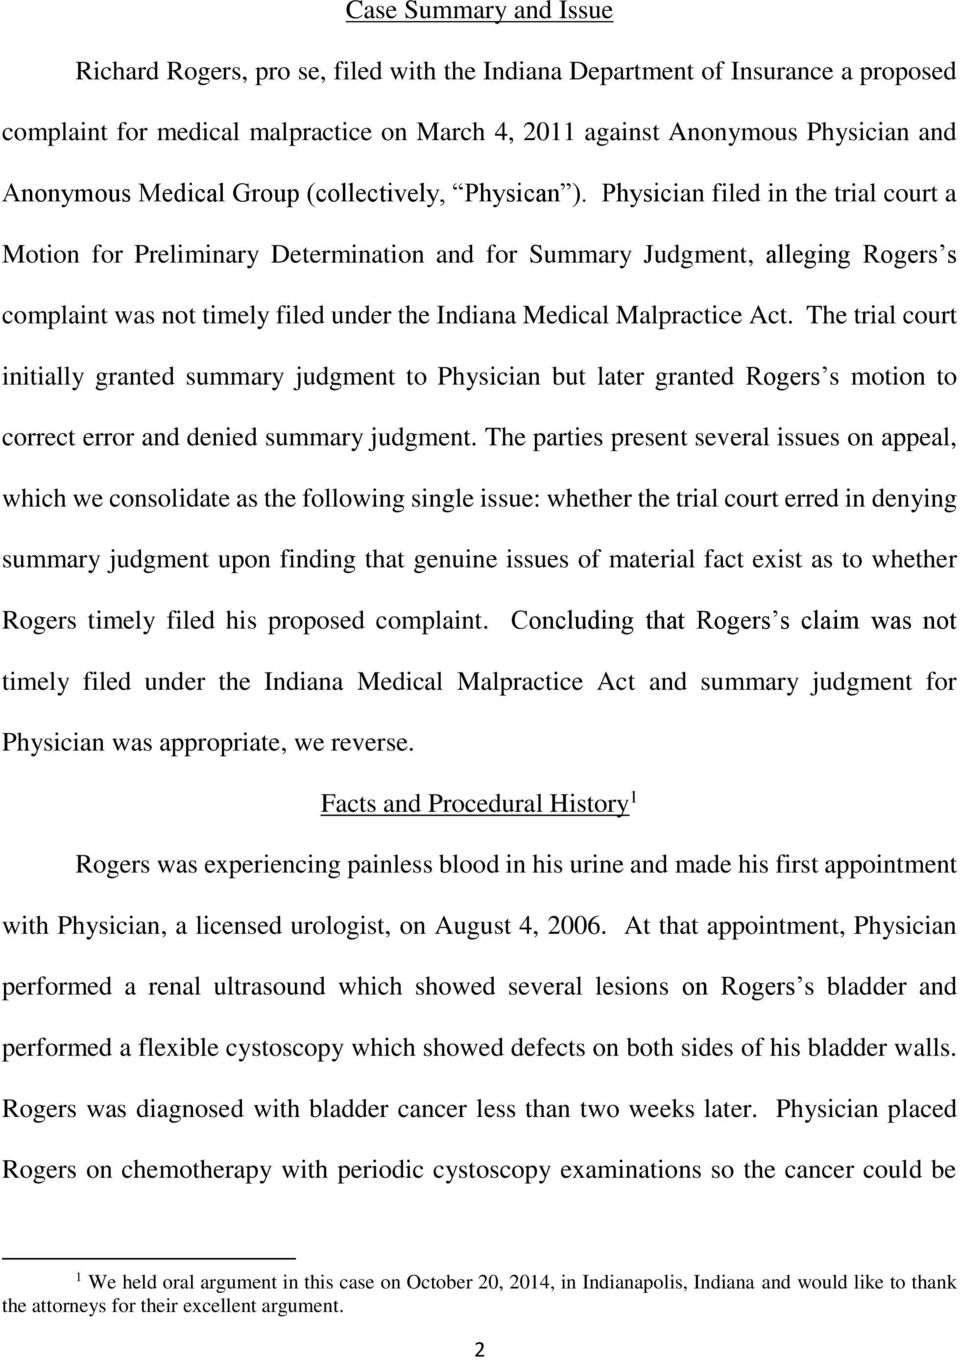 Physician filed in the trial court a Motion for Preliminary Determination and for Summary Judgment, alleging Rogers s complaint was not timely filed under the Indiana Medical Malpractice Act.